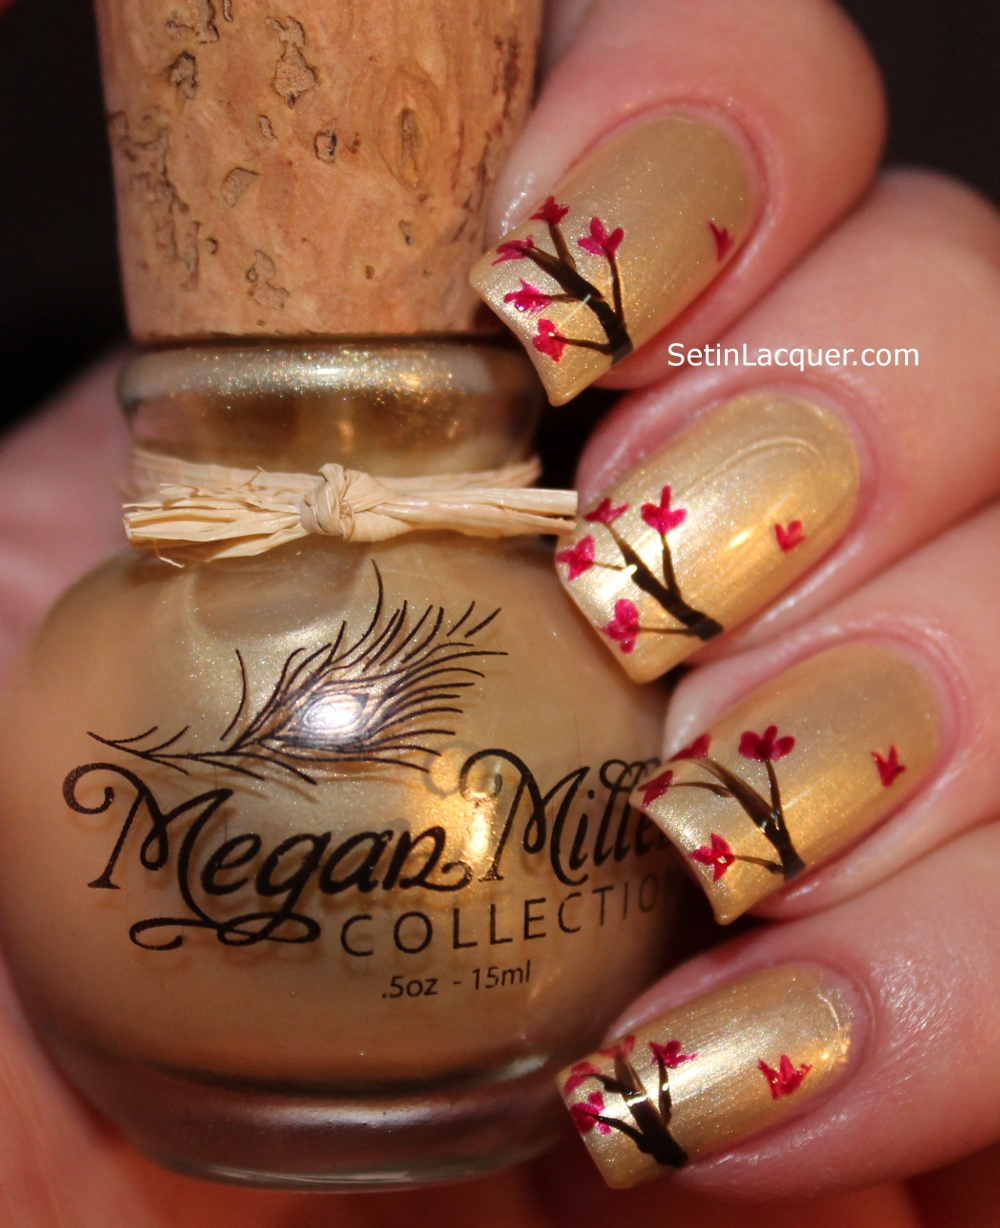 Fall Pedicure Designs: 'Leave' It Up To The Megan Miller Fall Collection